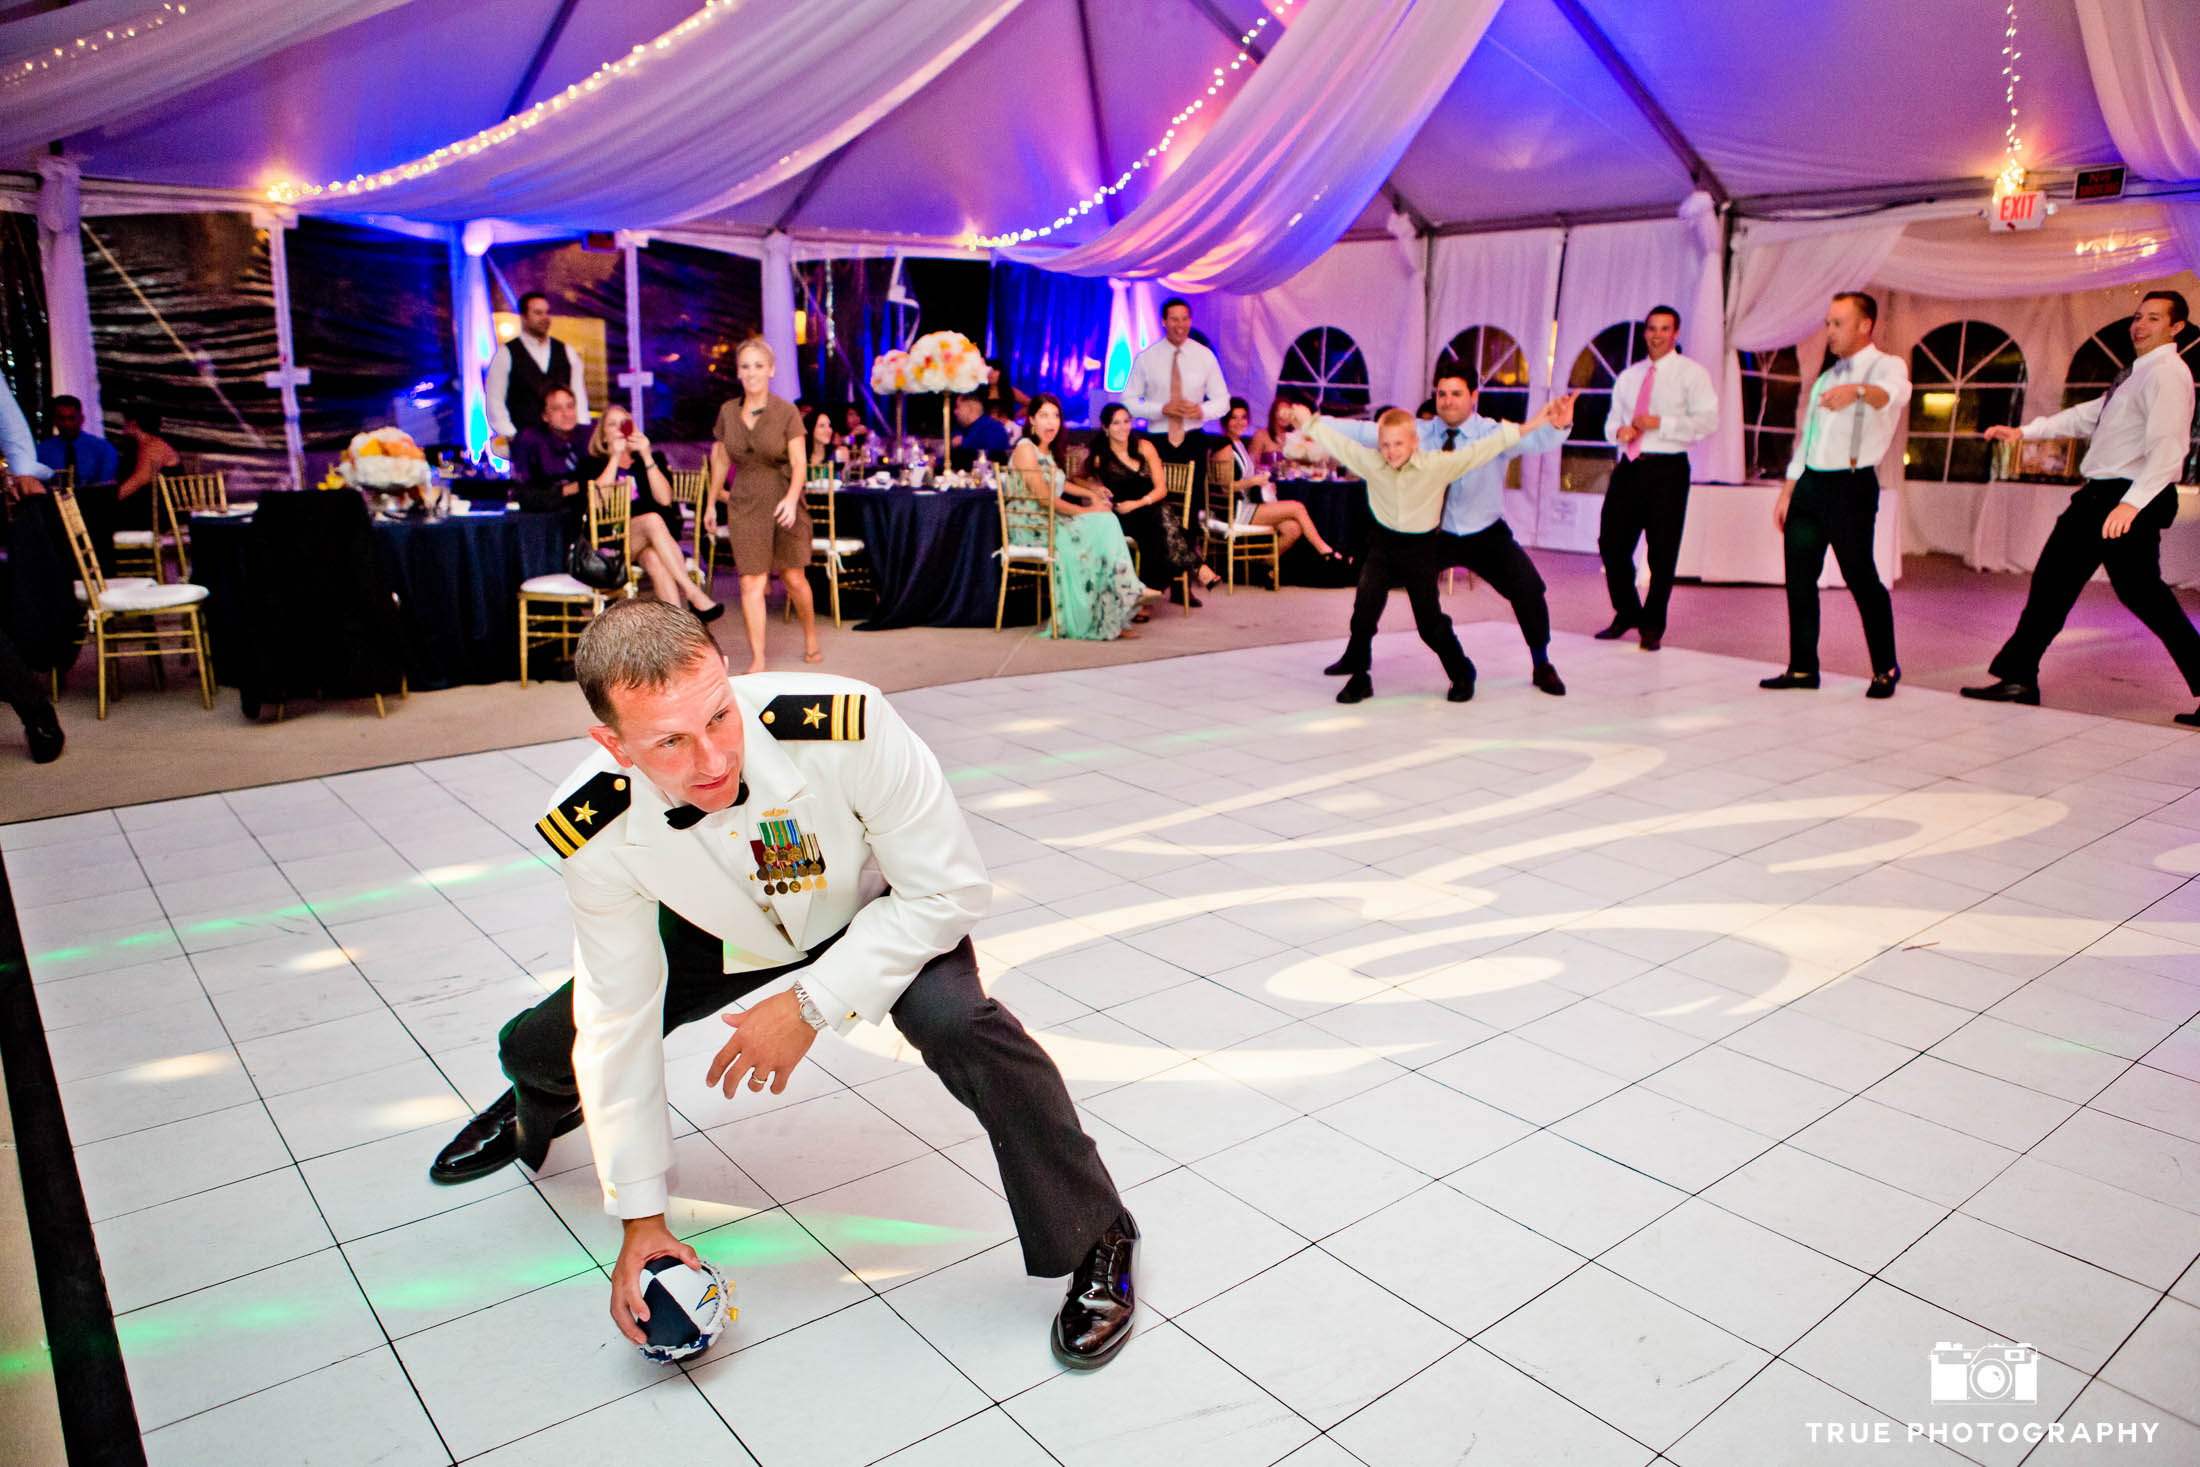 Groom prepares to throw garter during wedding reception